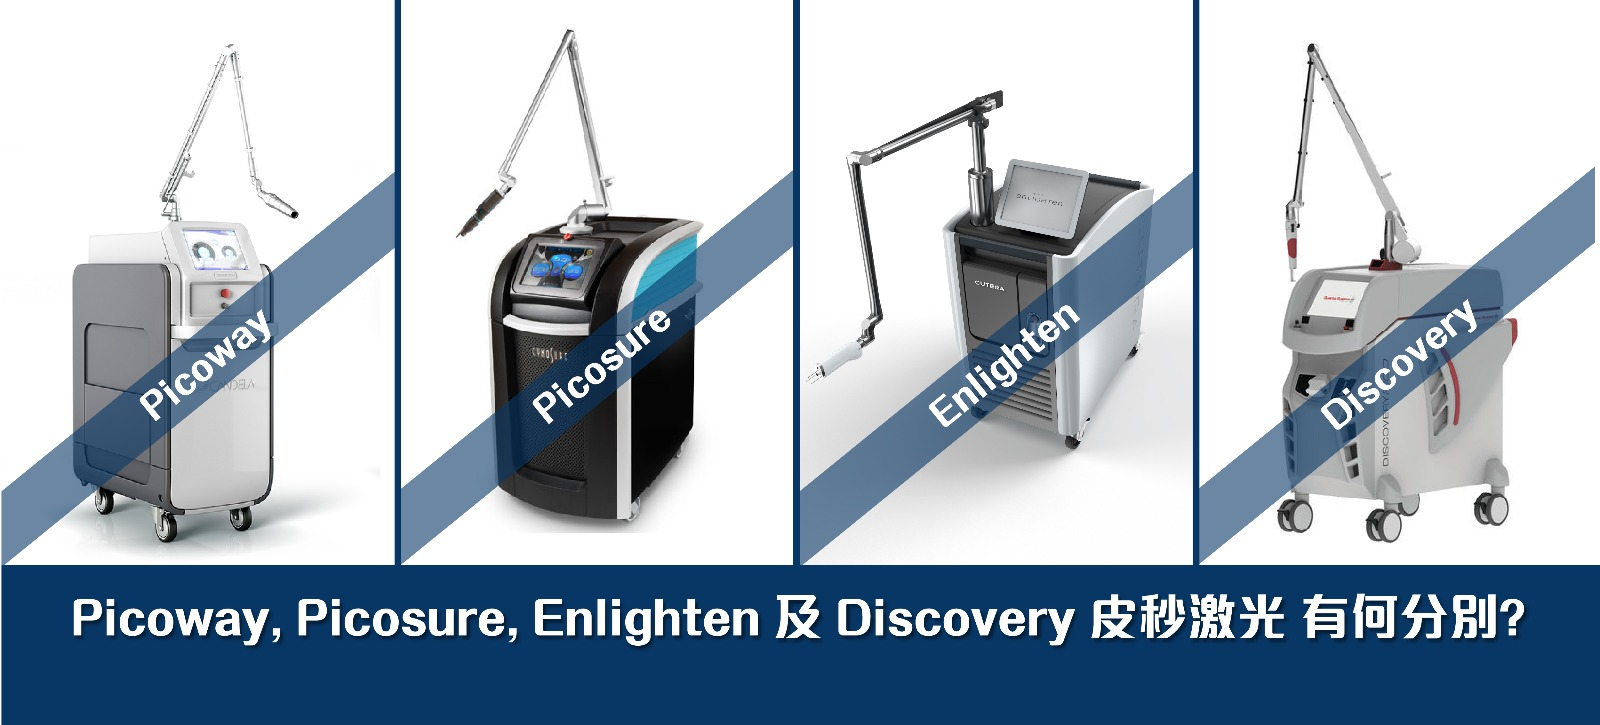 Picoway, Picosure, Enlighten, Discovery皮秒激光 有何分別?